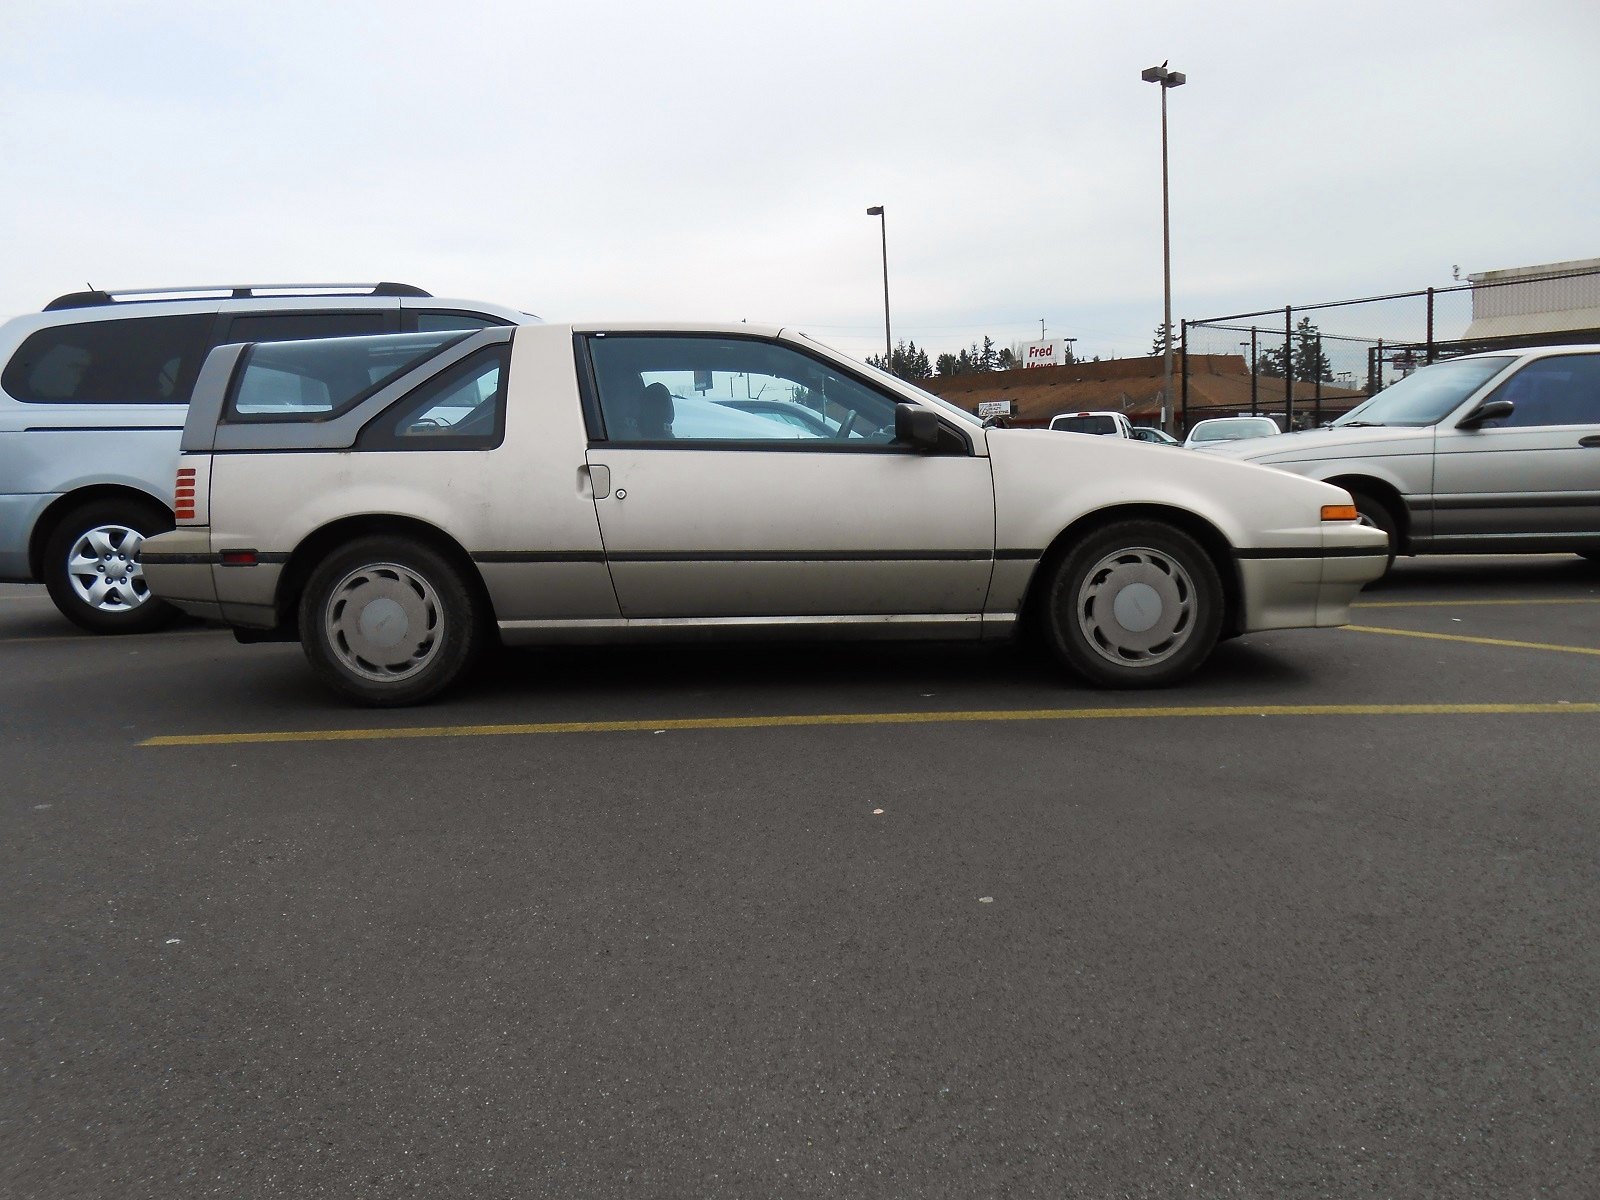 Seattle's Parked Cars: 1988 Nissan Pulsar NX Sportbak